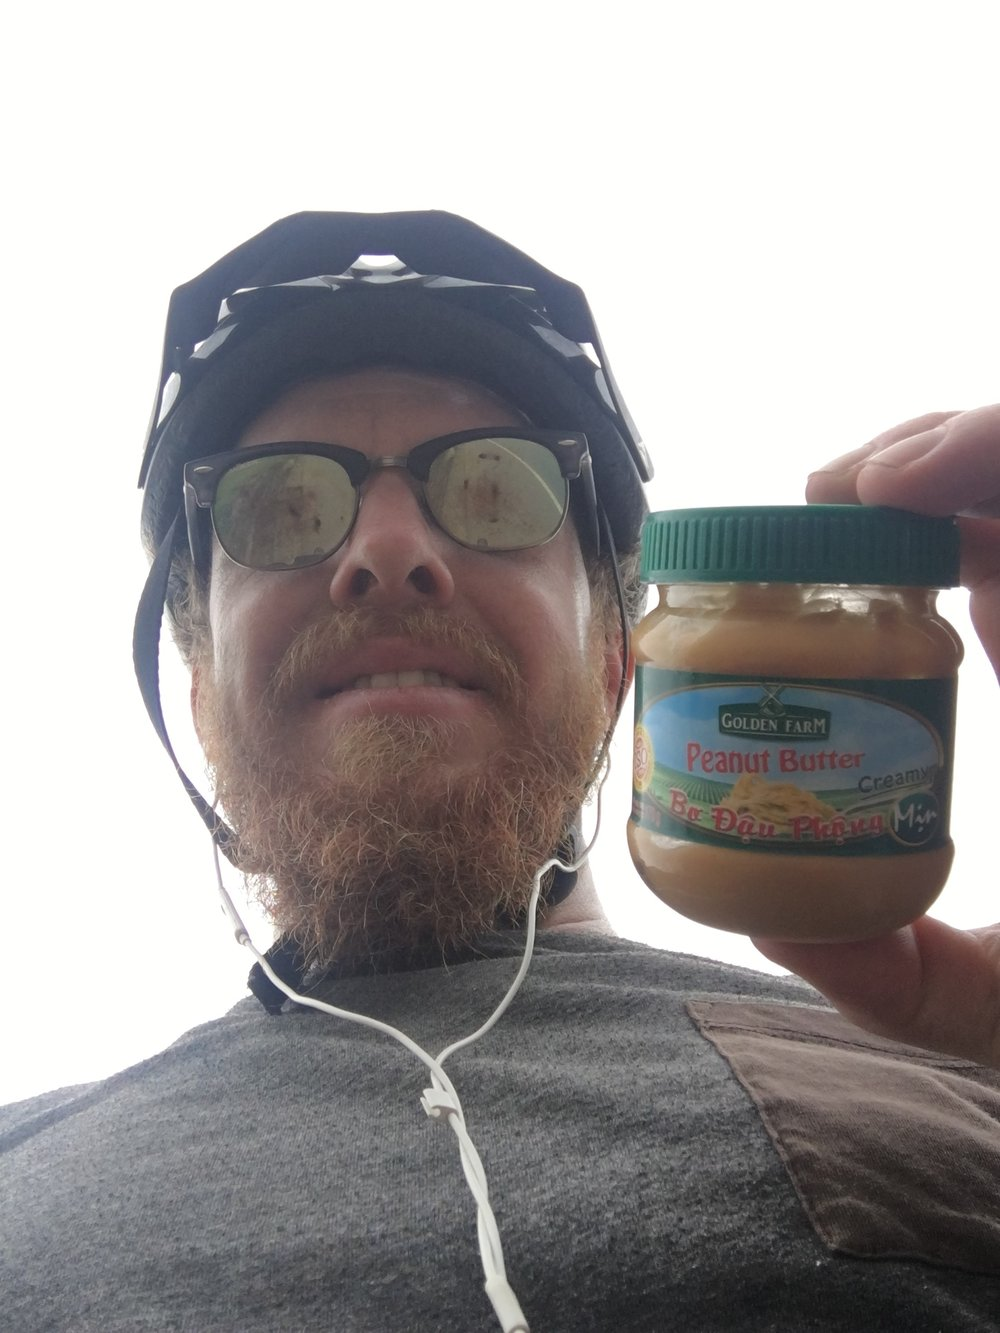 Peanut butter, perfect for a quick energy boost on the move!